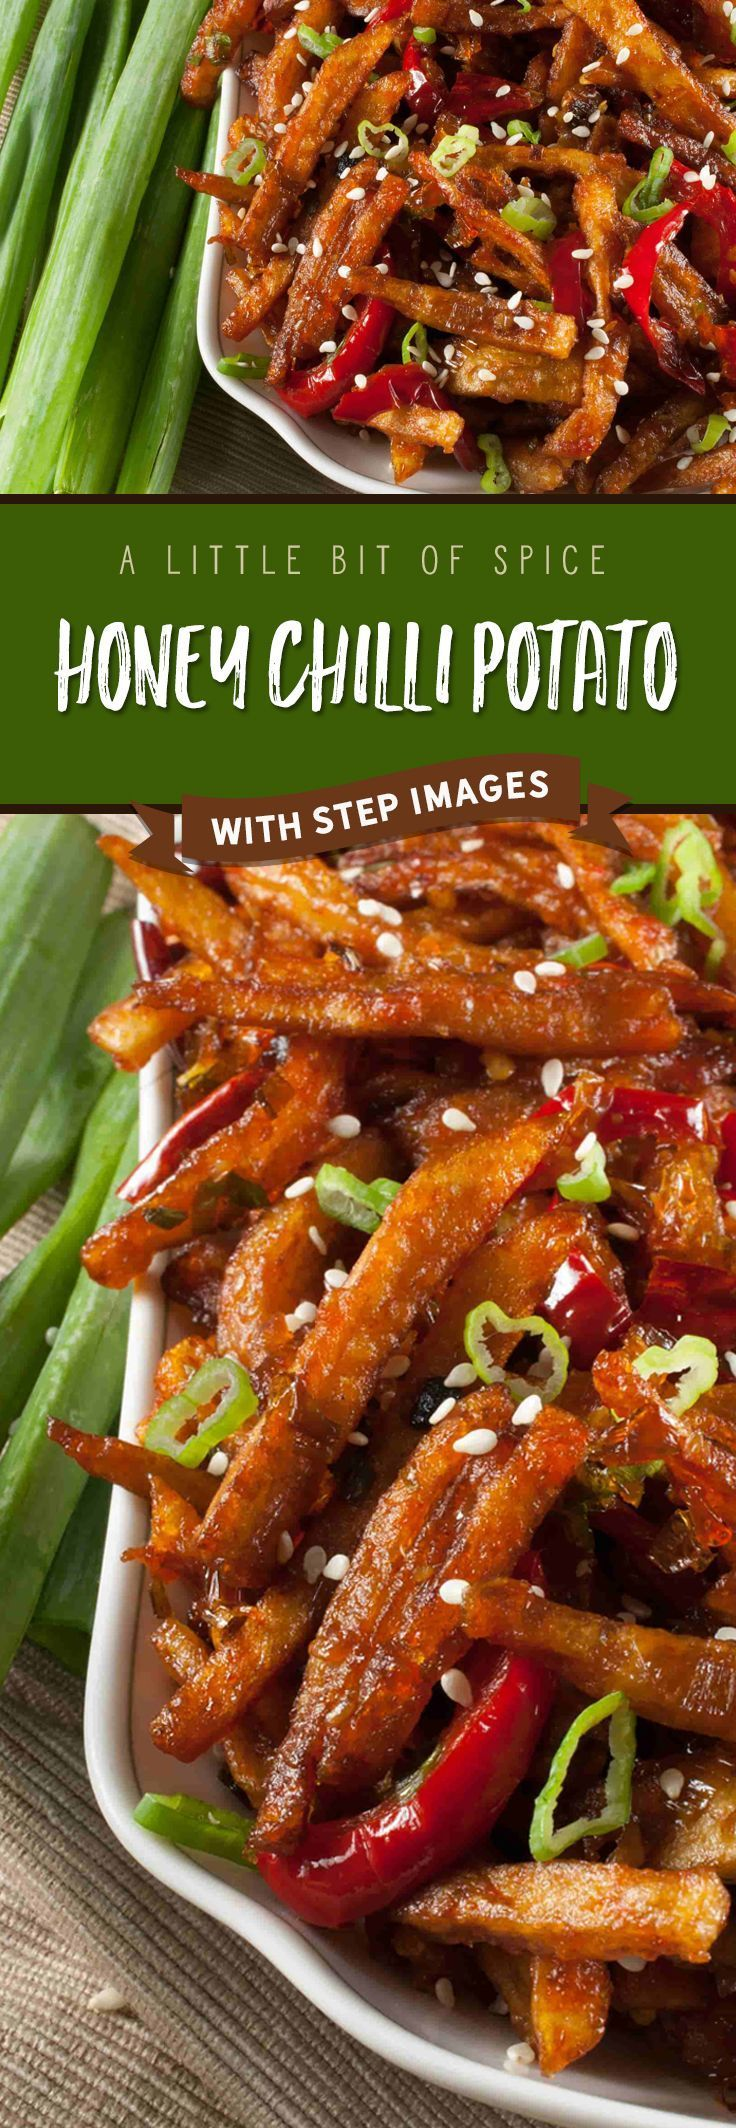 A popular Indo-Chinese appetizer. Crispy Fried Potatoes cooked with spring onion and bell peppers in a sweet and spicy sauce.